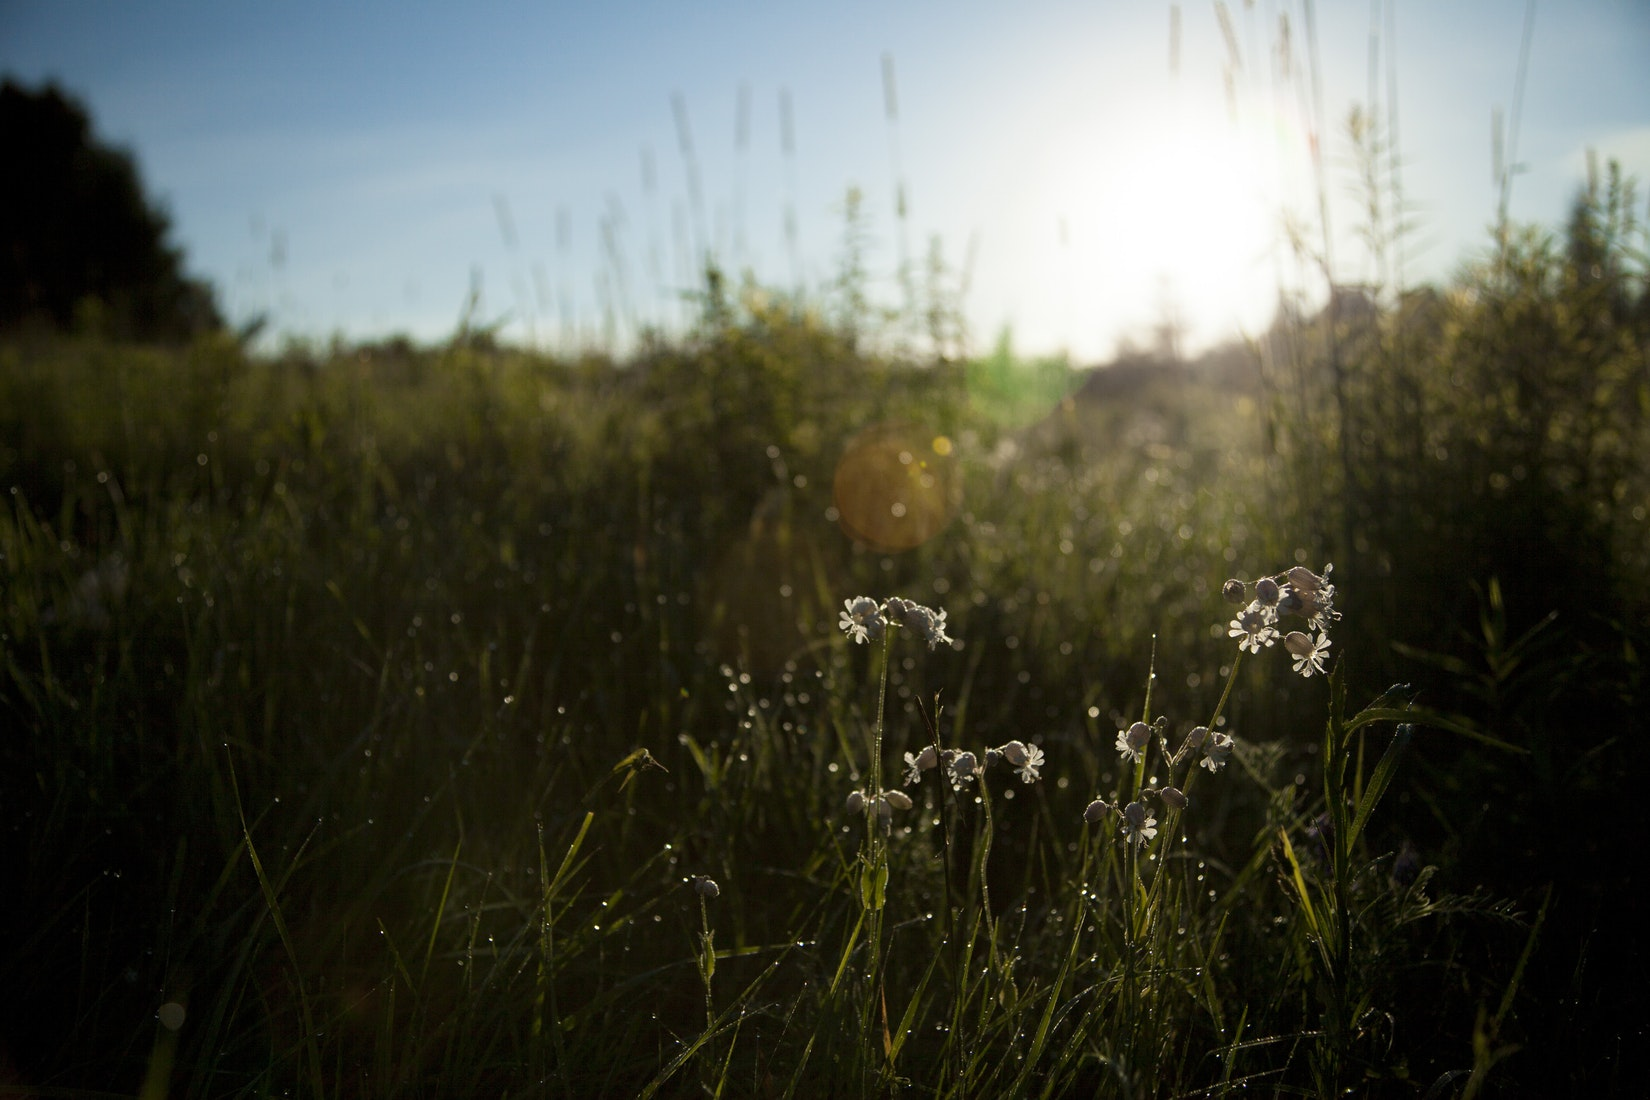 The city of Baltimore is enabling residents to turn abandoned lots into wildflower meadows to help restore diversity,reduce litter, and curb the amount of pollution running into the Chesapeake Bay.